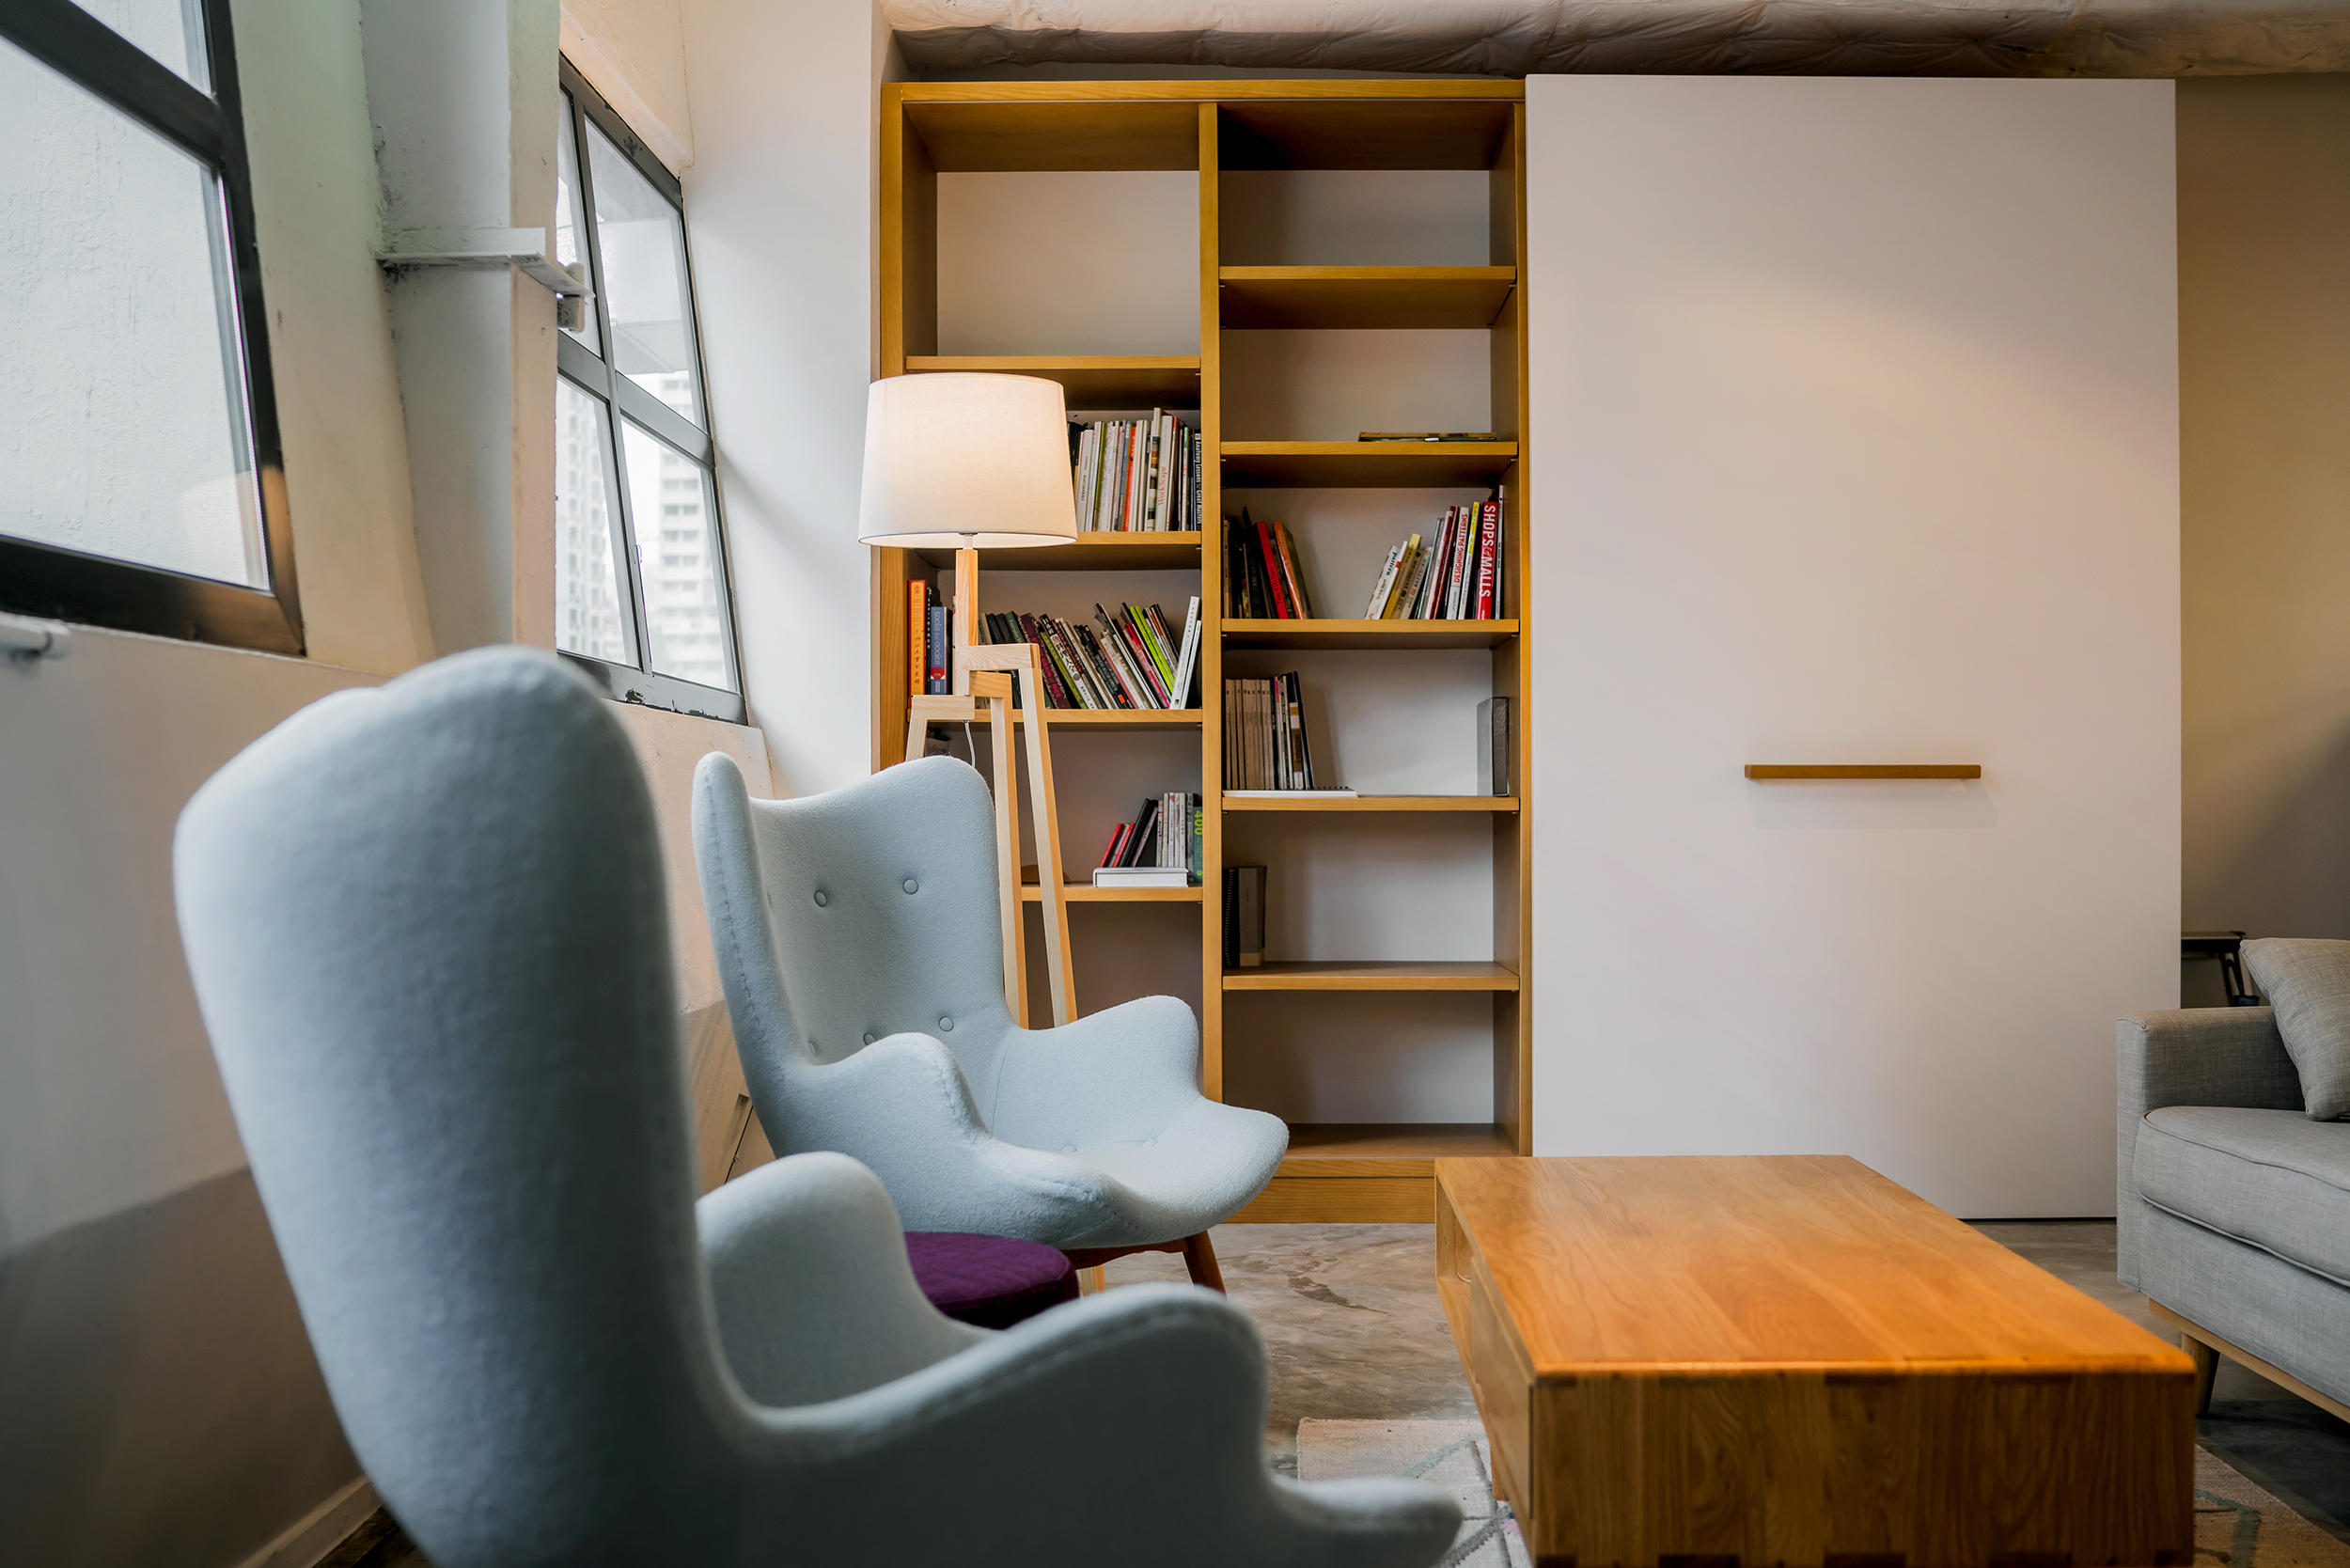 The social lounge with a transformable library and pantry unit.